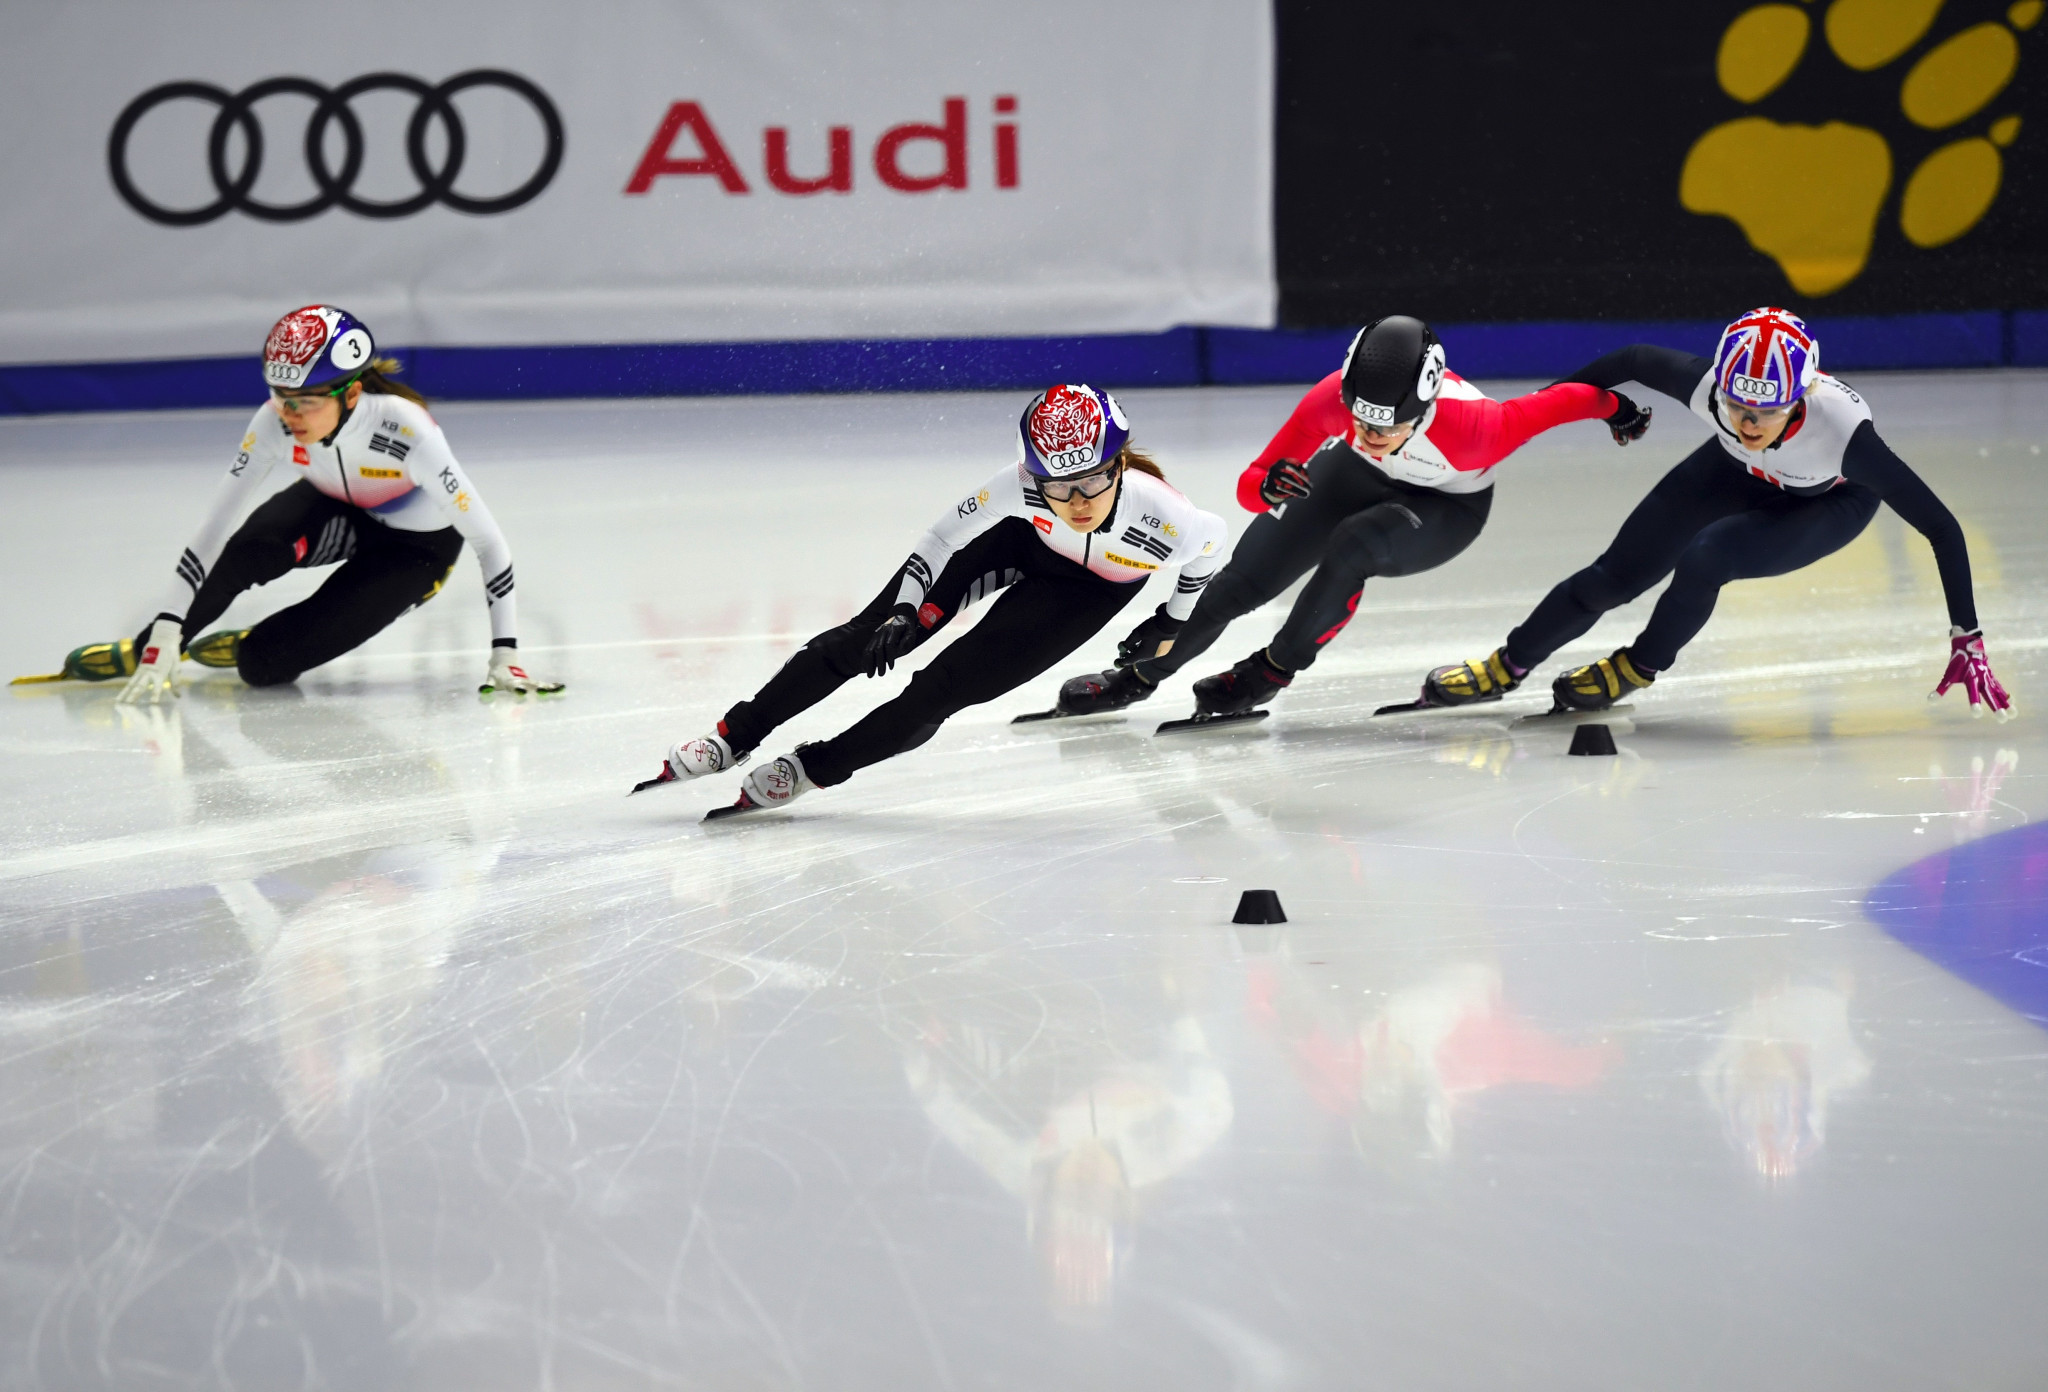 The 2019-2020 ISU Short Track World Cup season runs from November to February ©Getty Images